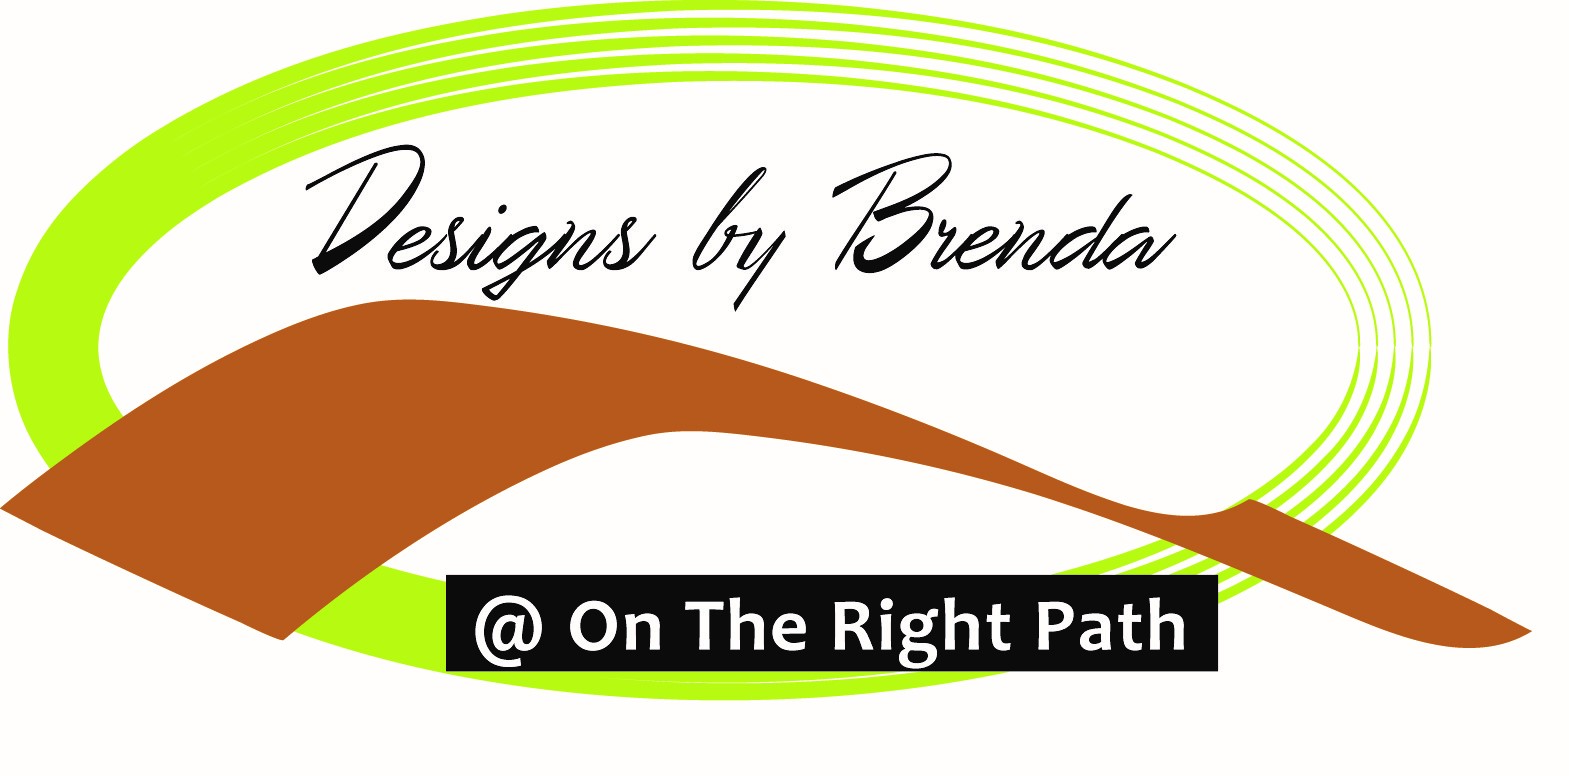 Designs By Brenda @ On The Right Path Designs